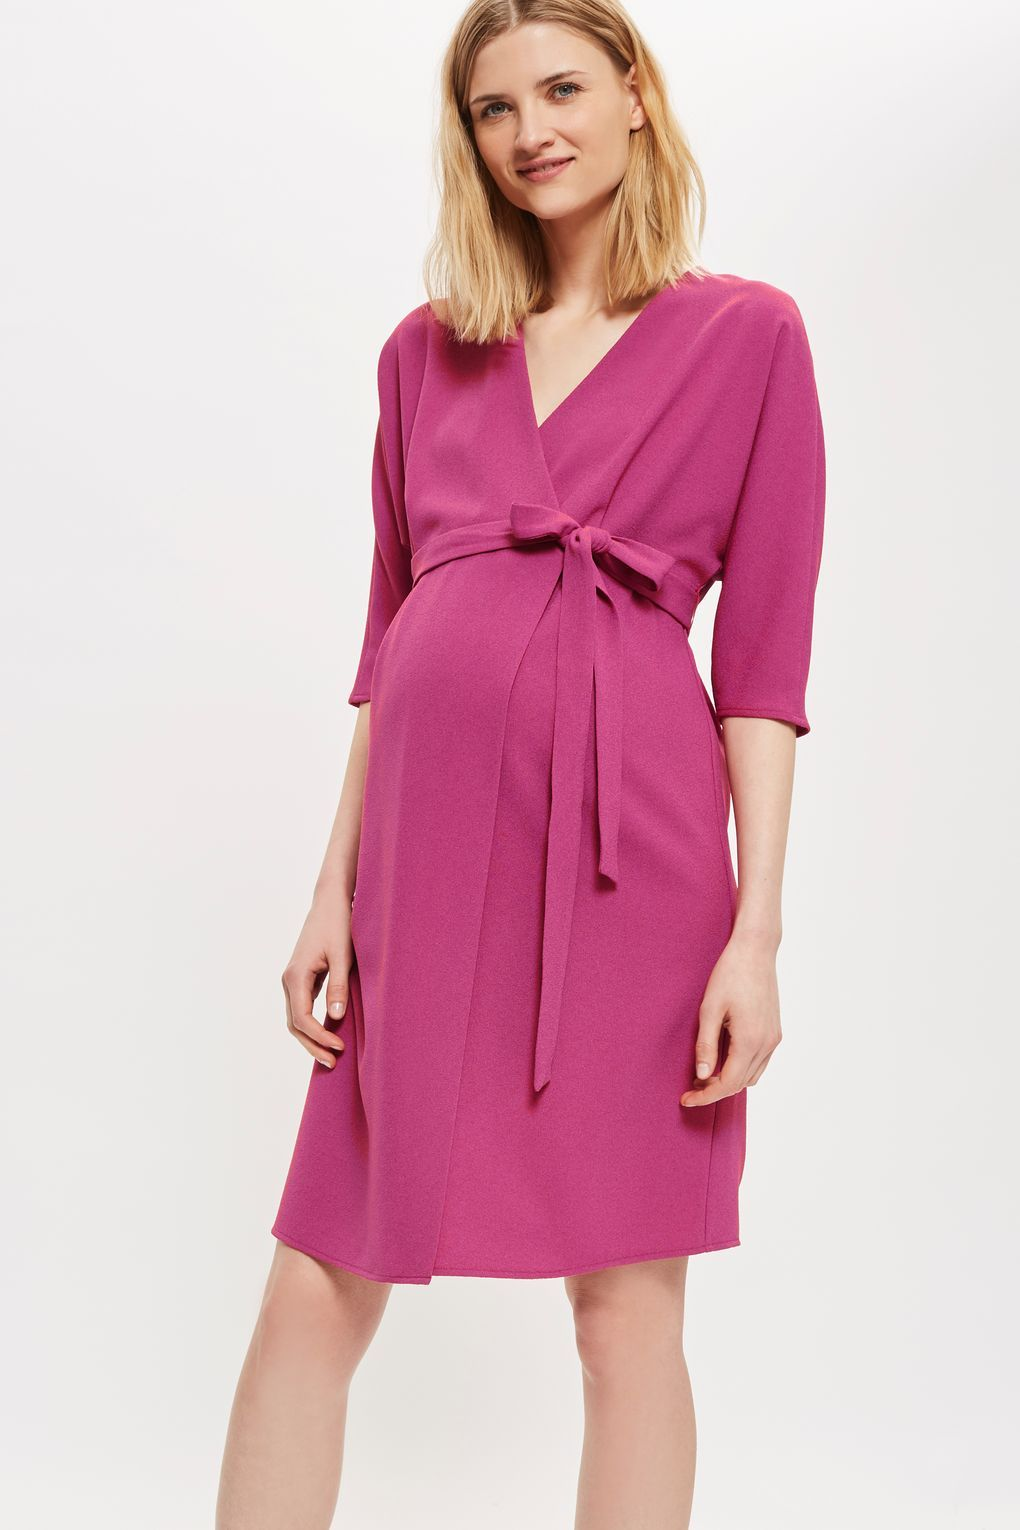 MATERNITY Wrap Midi Dress - Sale Clothing